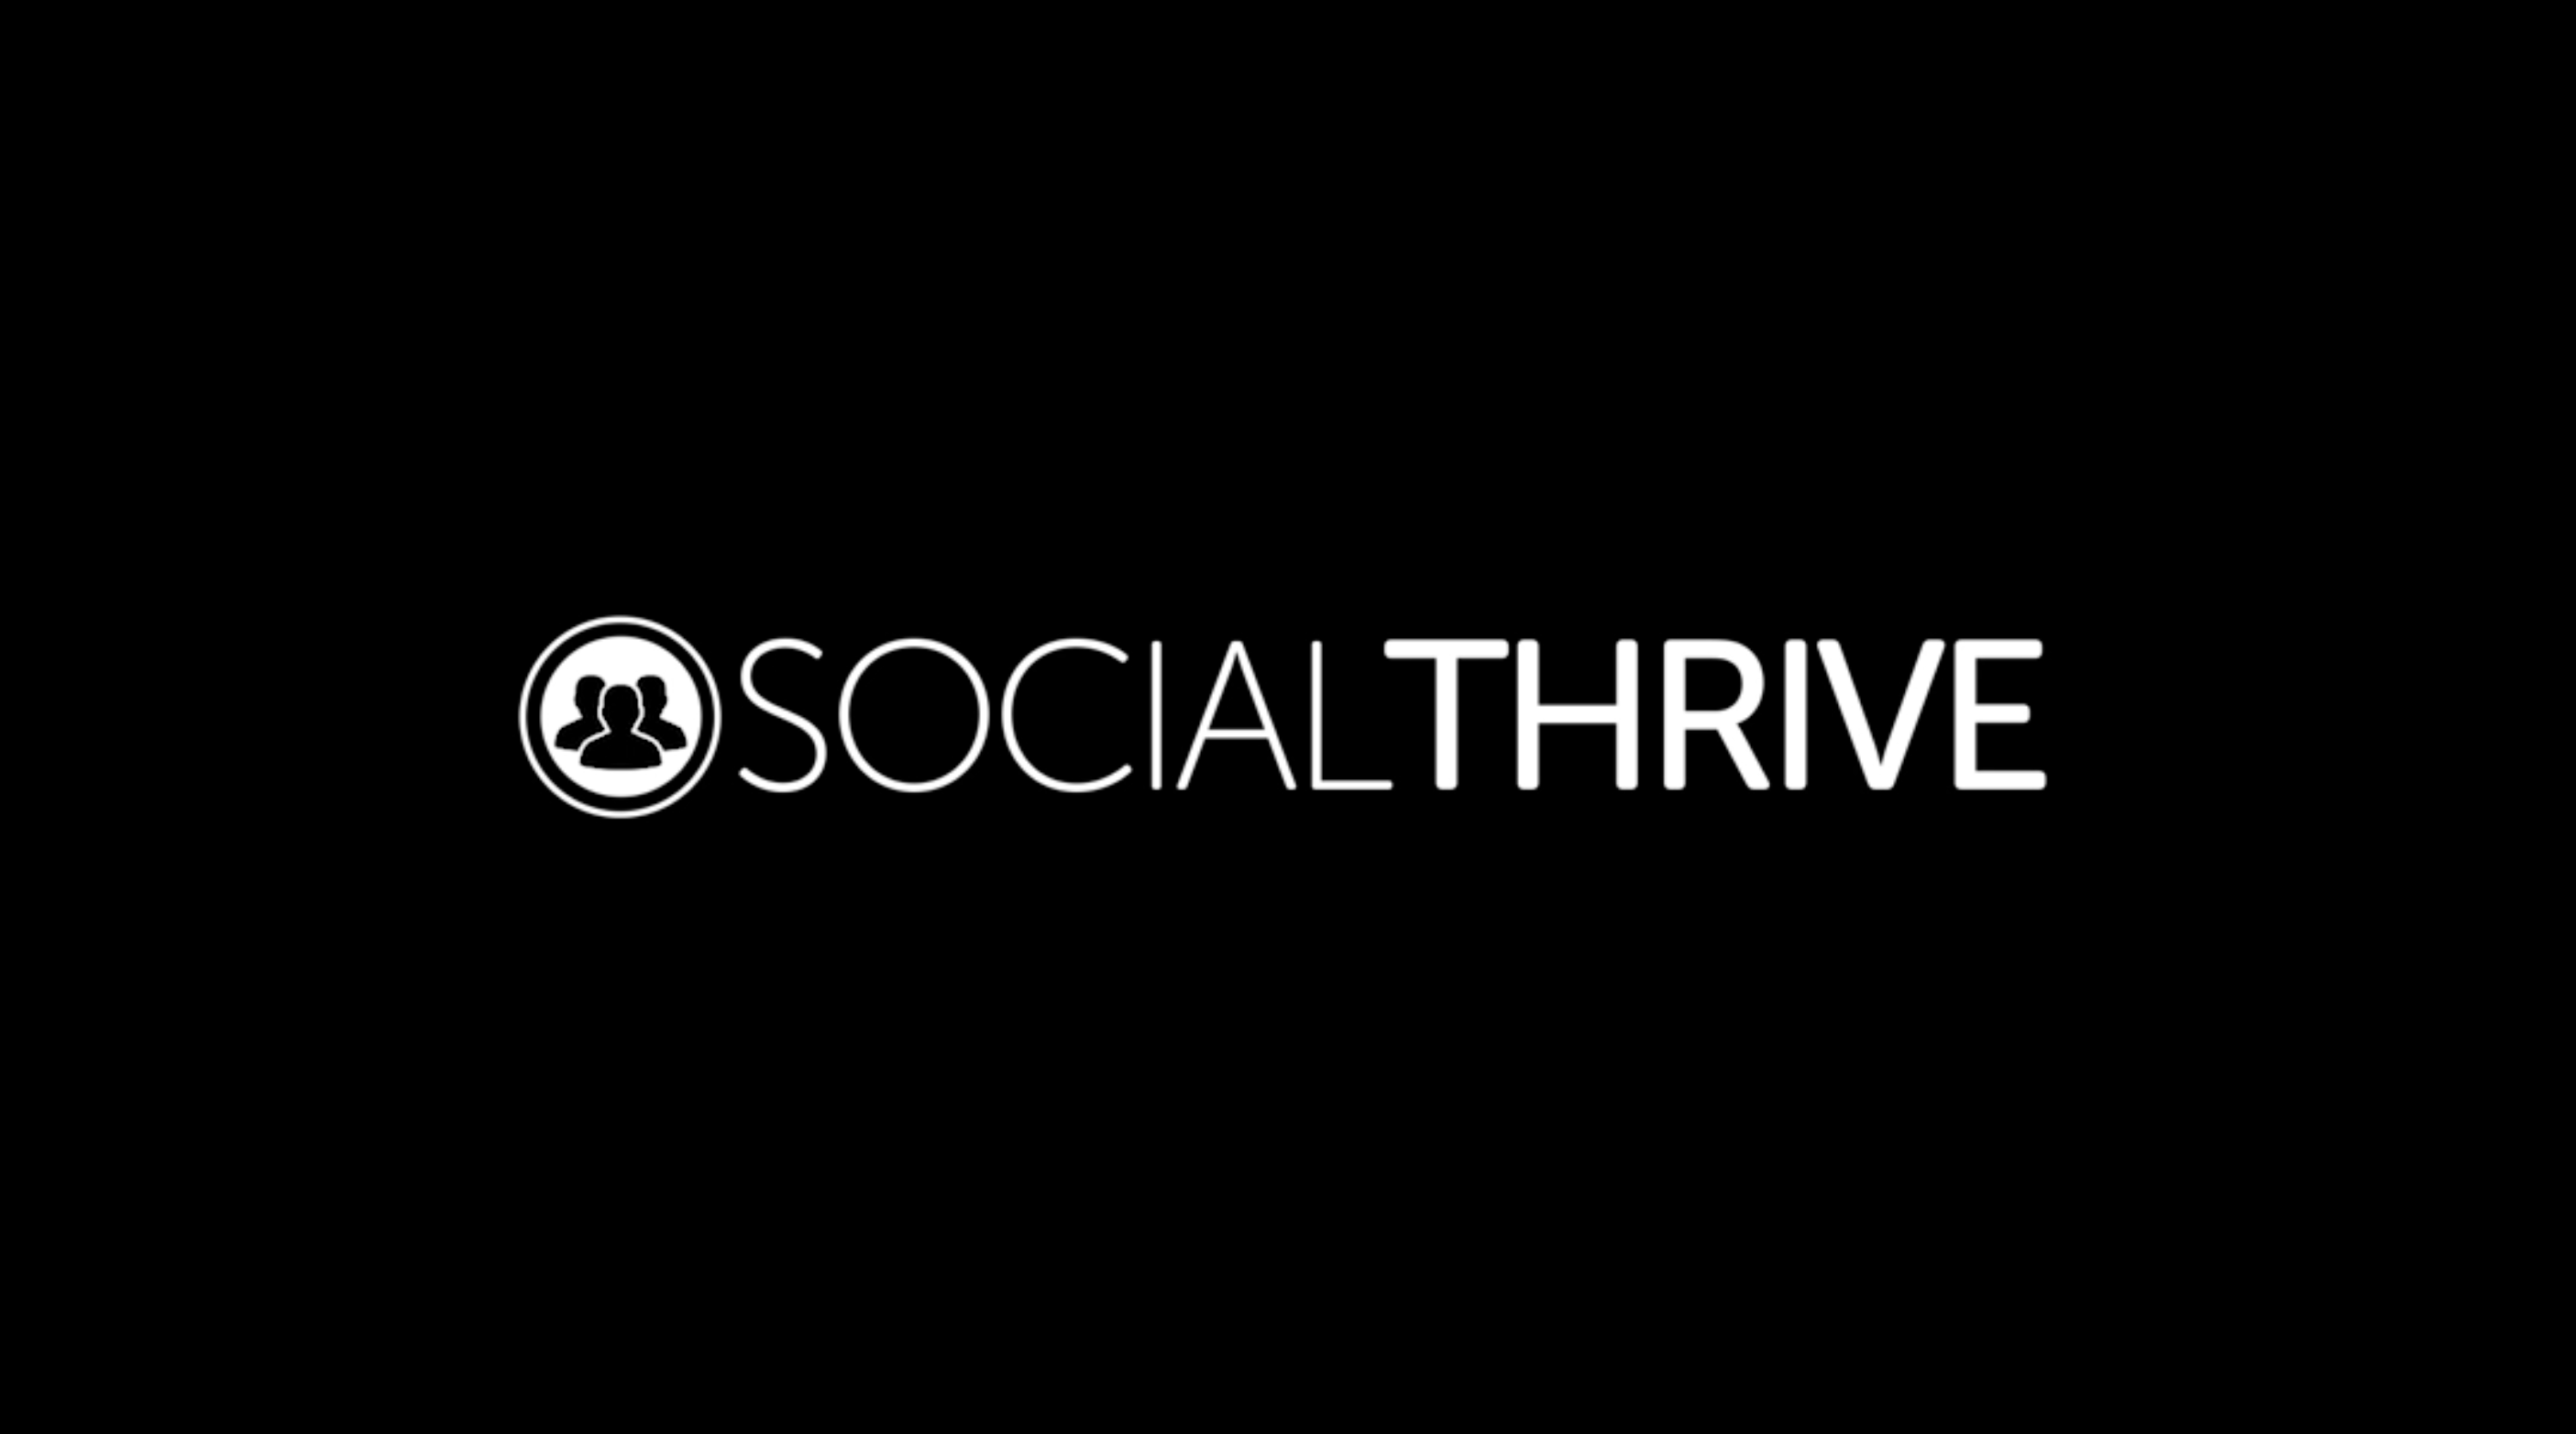 Social Thrive Video